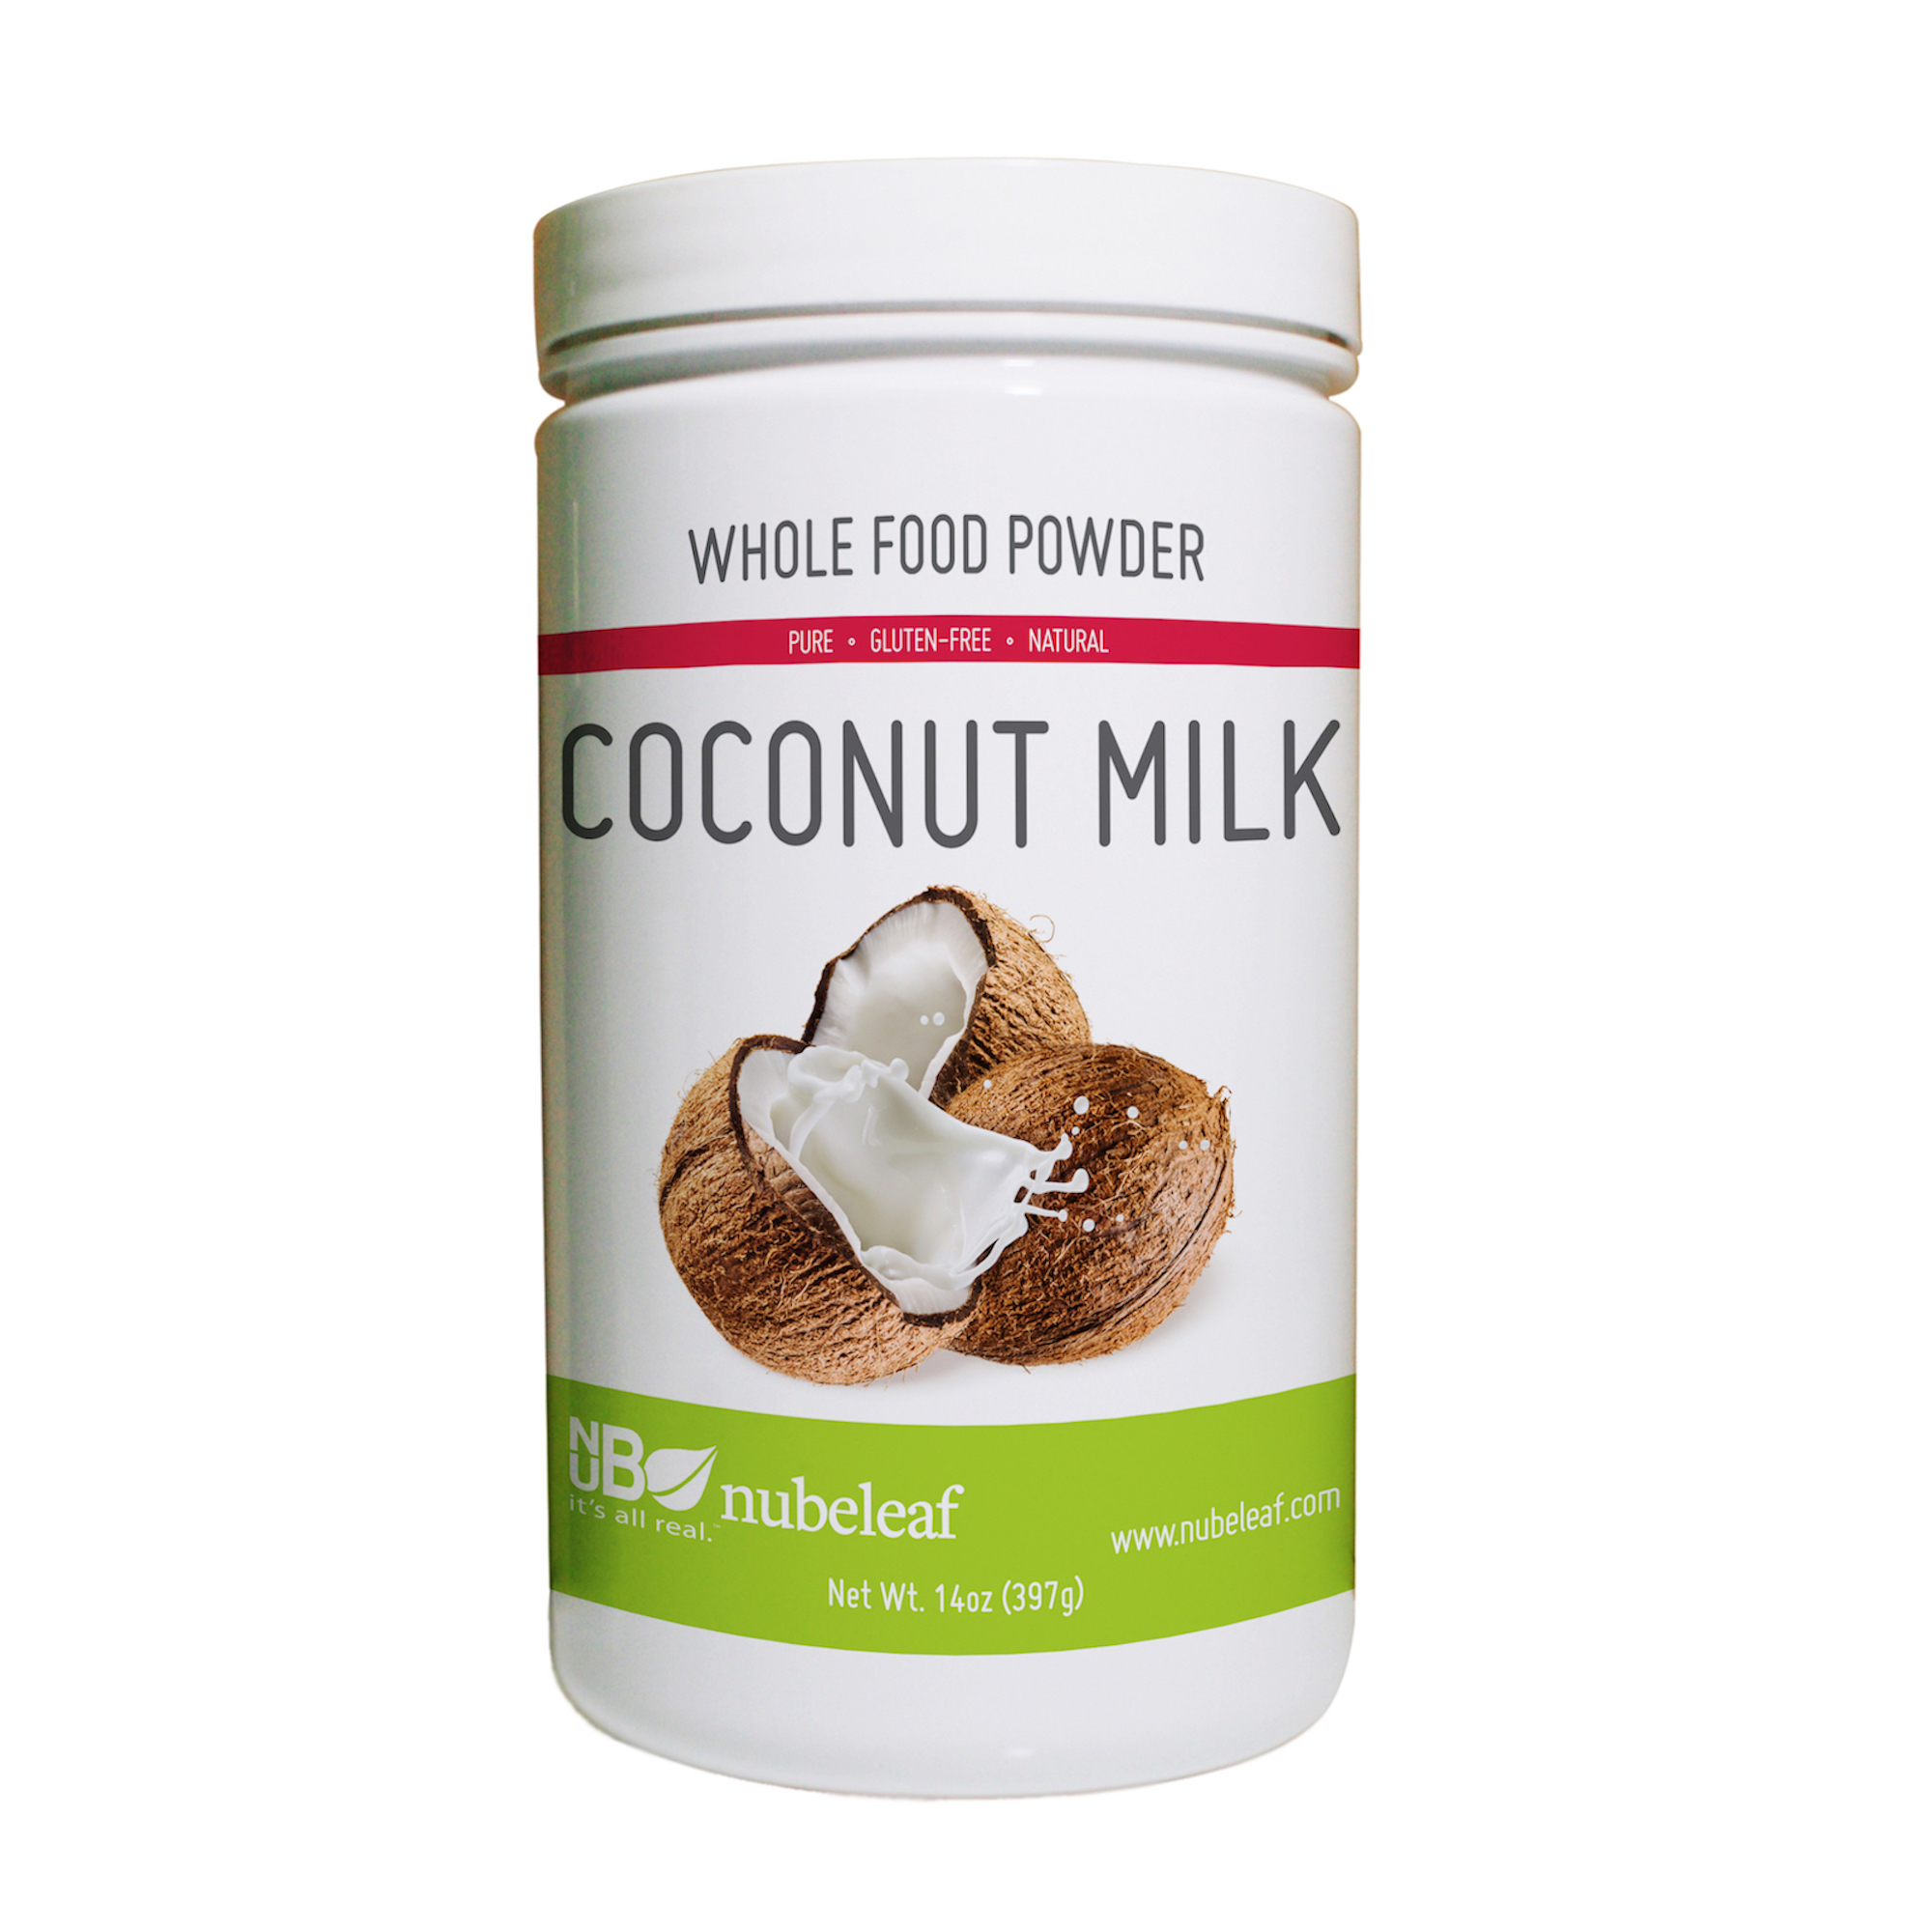 Coconut Milk_C_Large_Jar_Only_2019.jpg